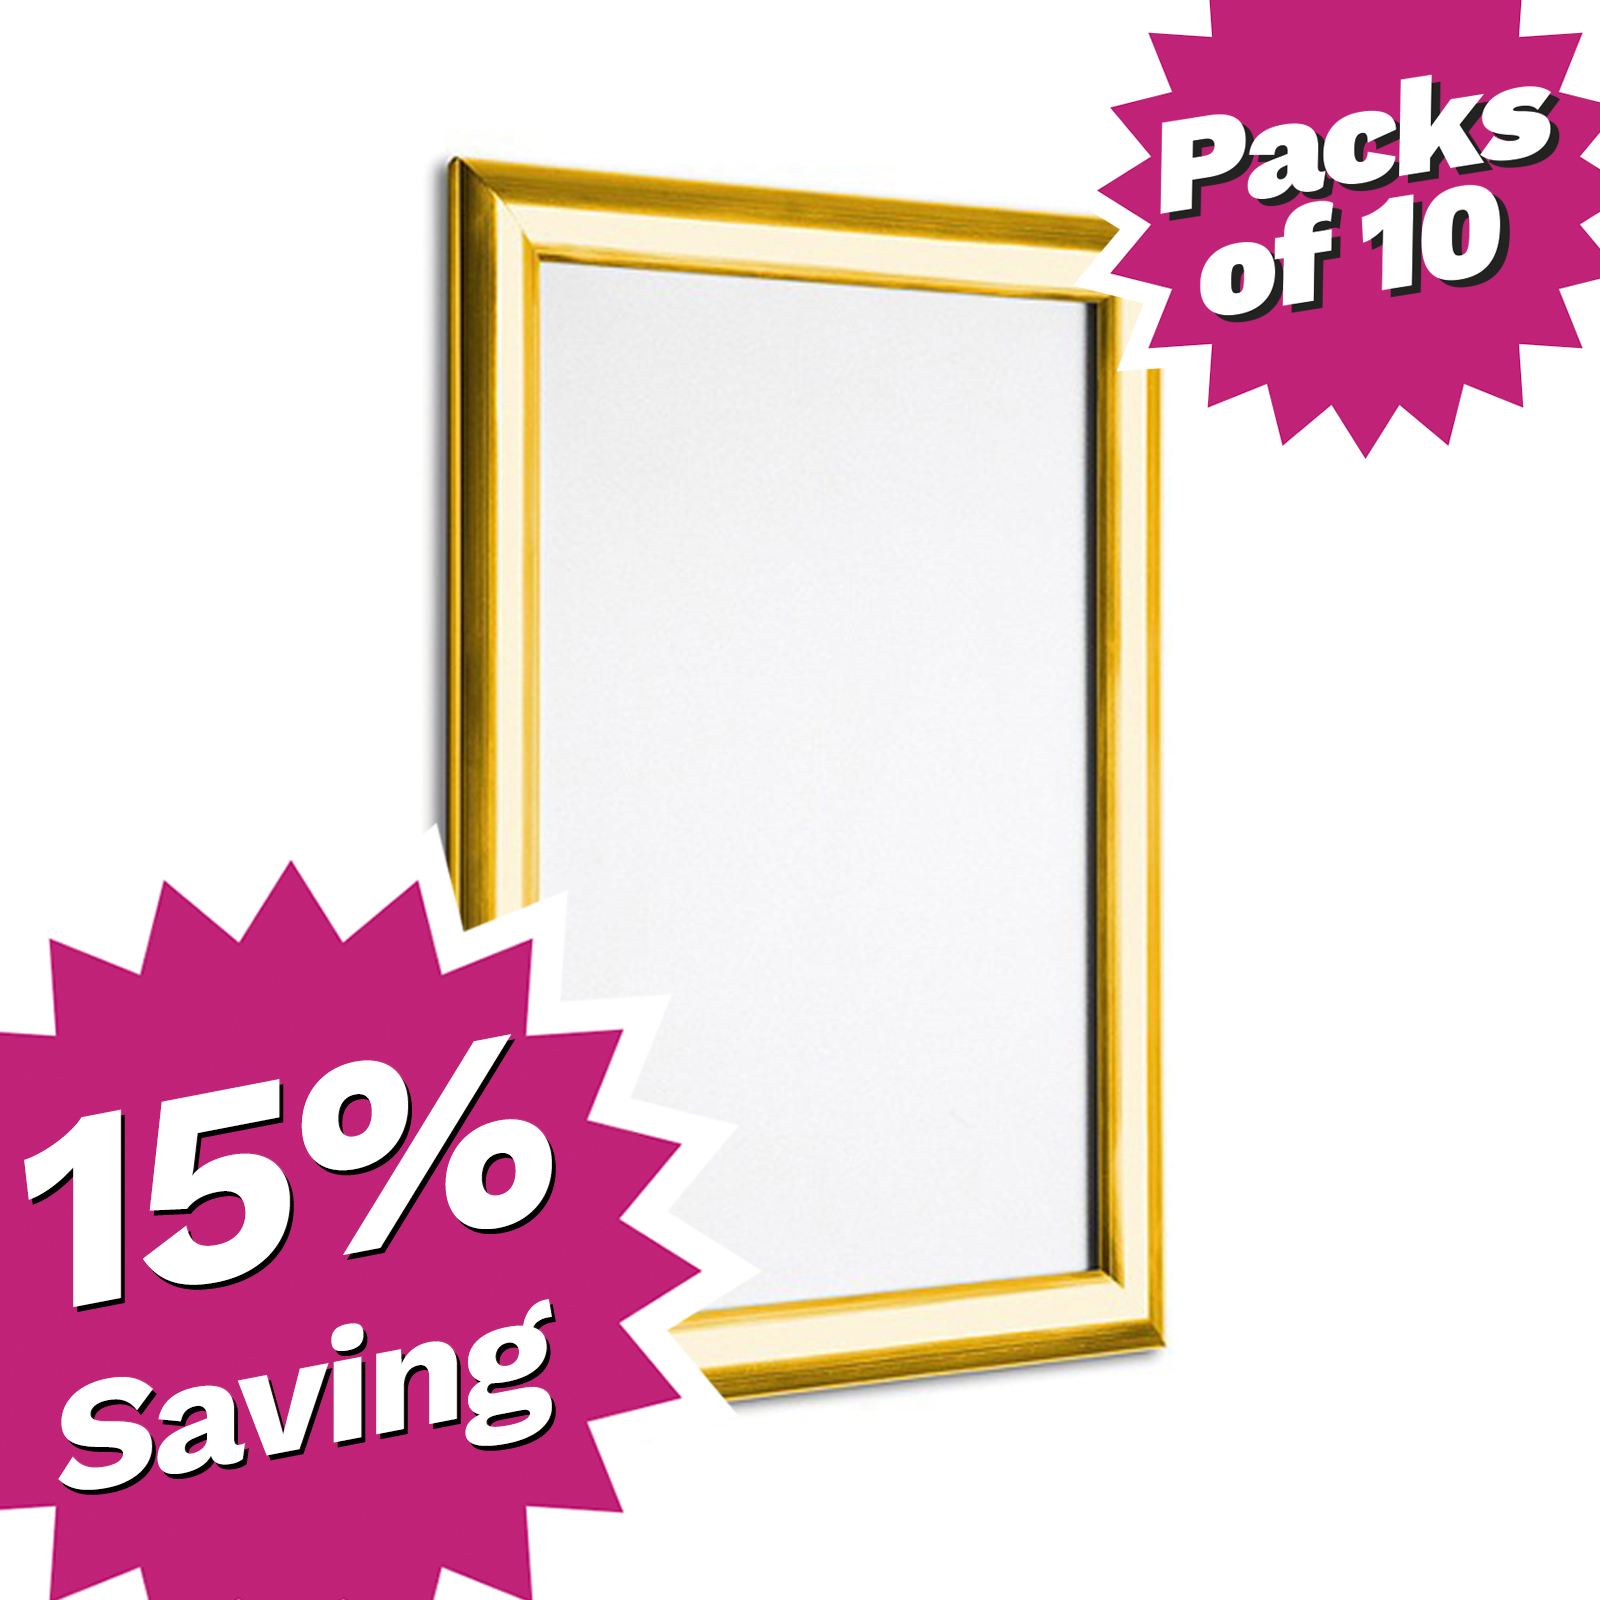 Pack of 10 - A4 & A3 Polished Gold Snap Poster Frames - Saving of 15%